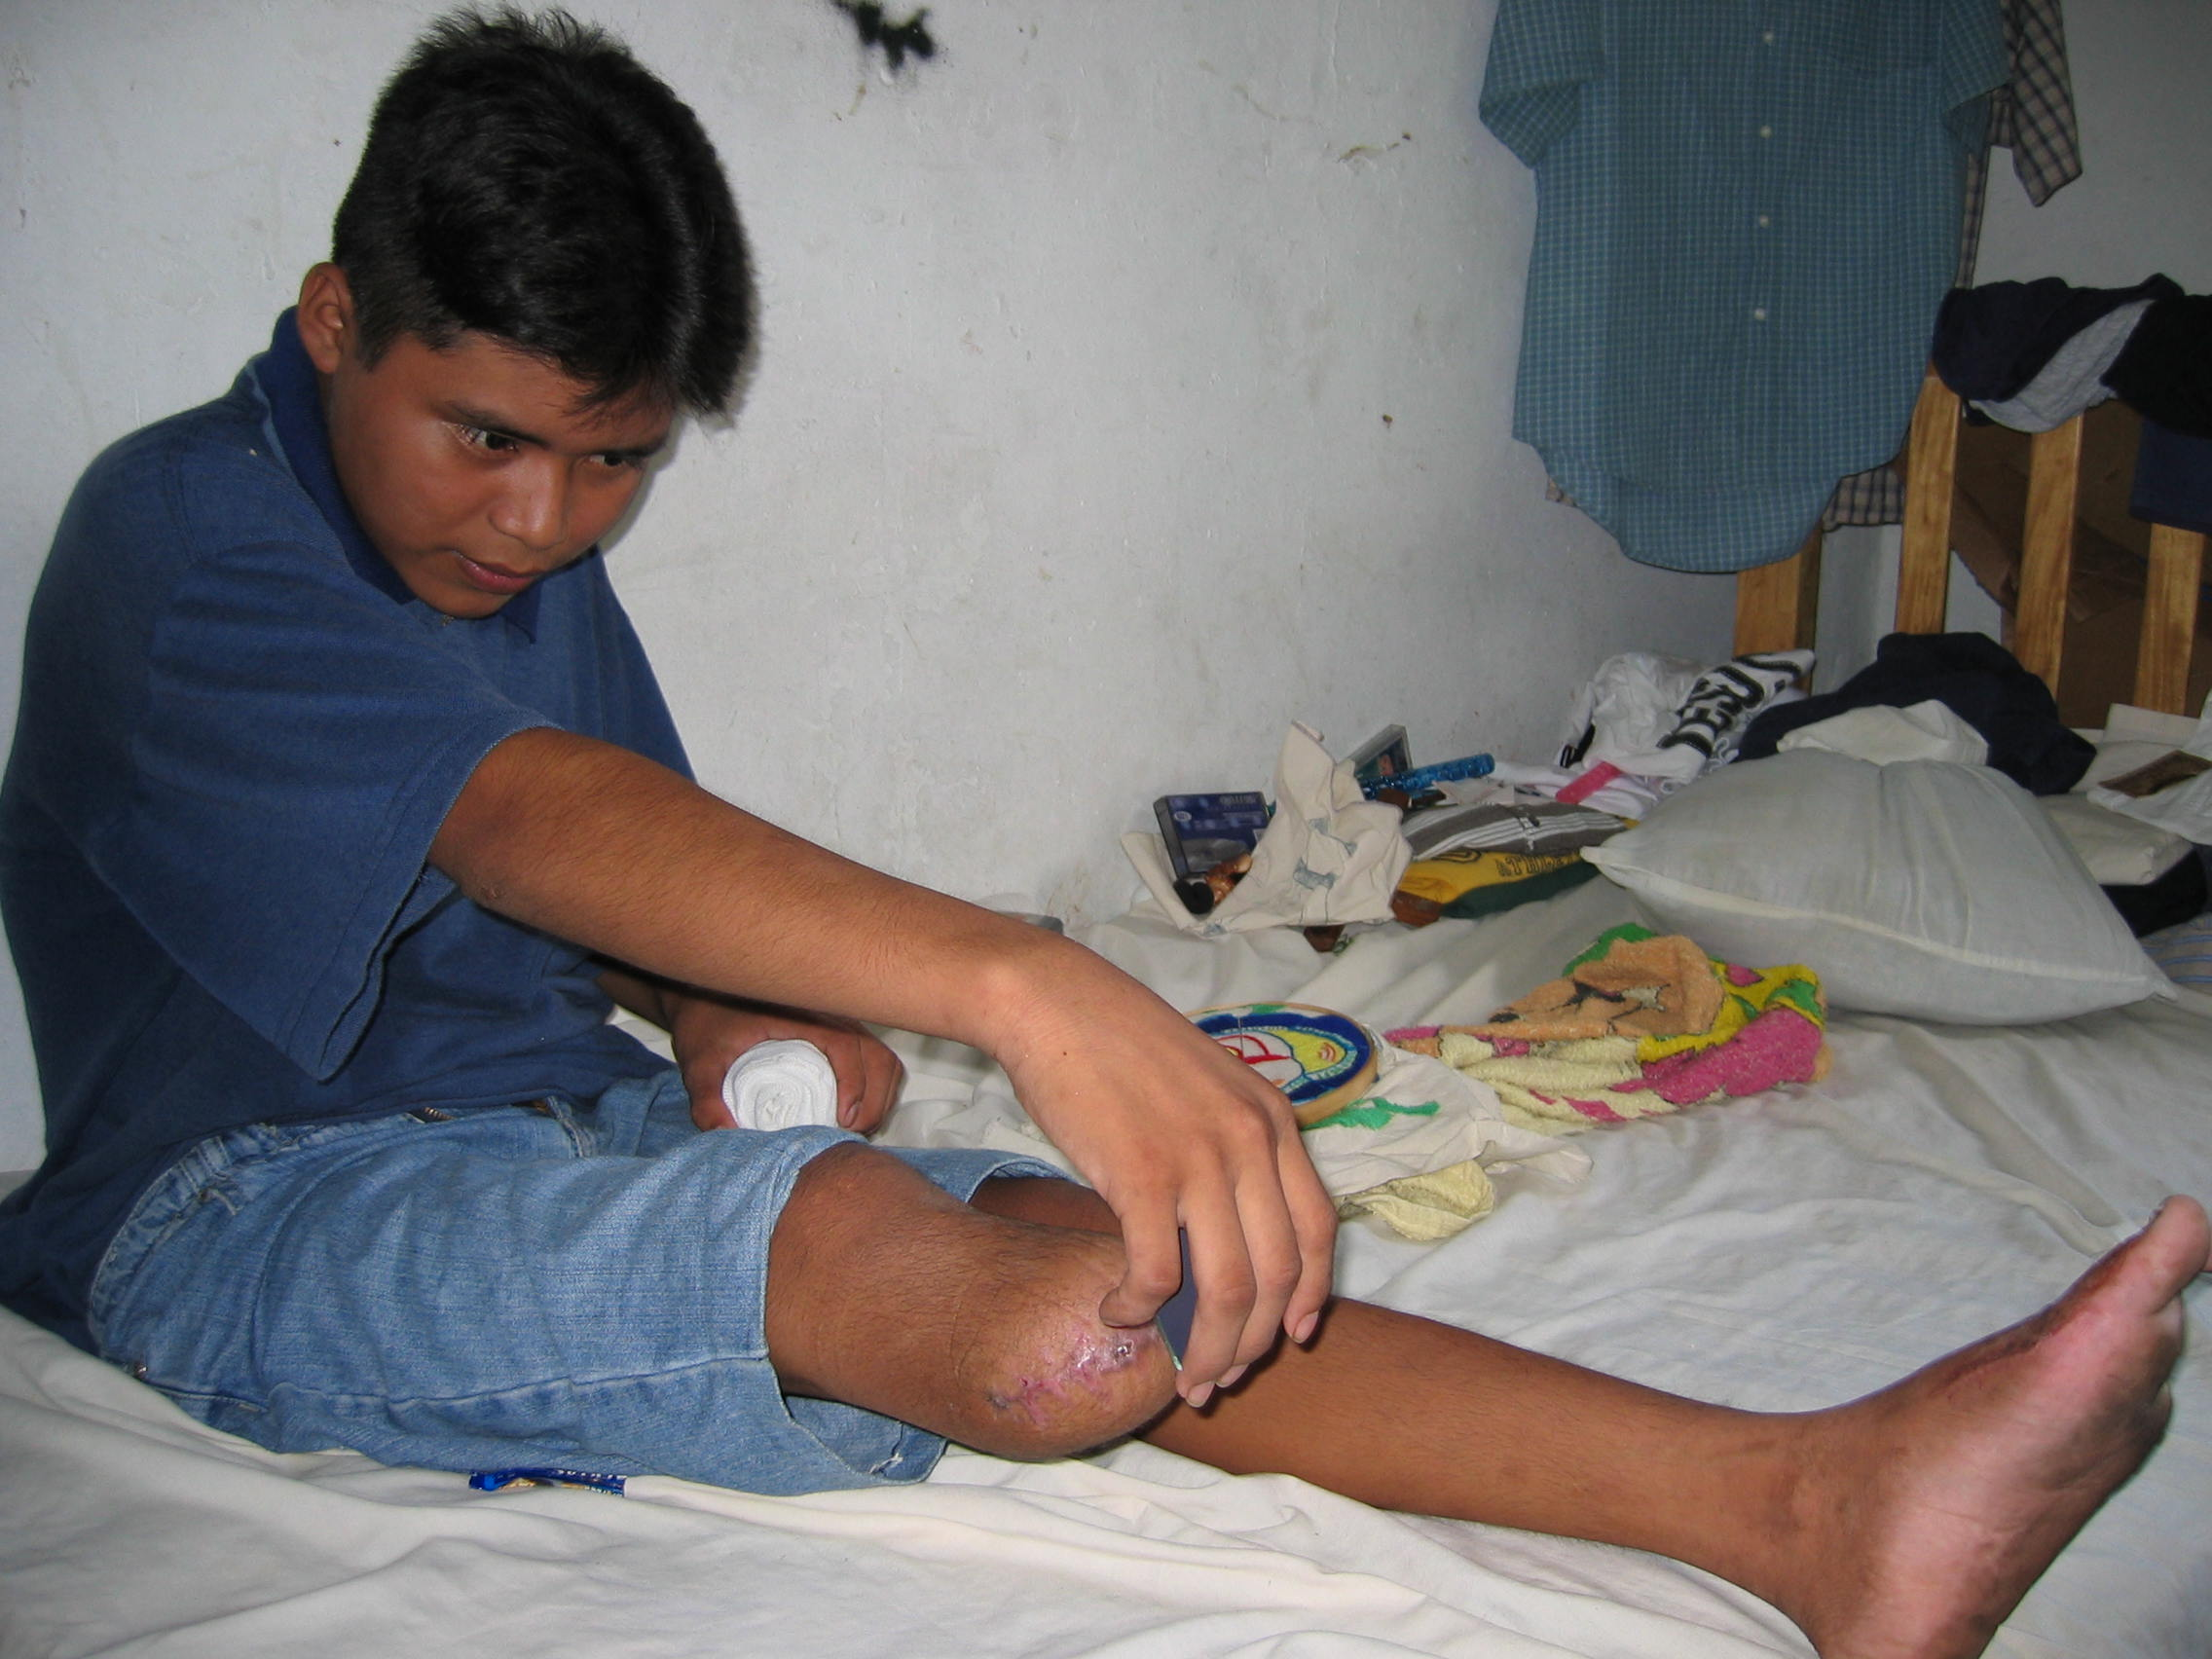 Hugo Tambrís Sióp, 14, checks how well his wounds are healing with the help of a mirror. He lost part of his right leg and three toes on his left foot.